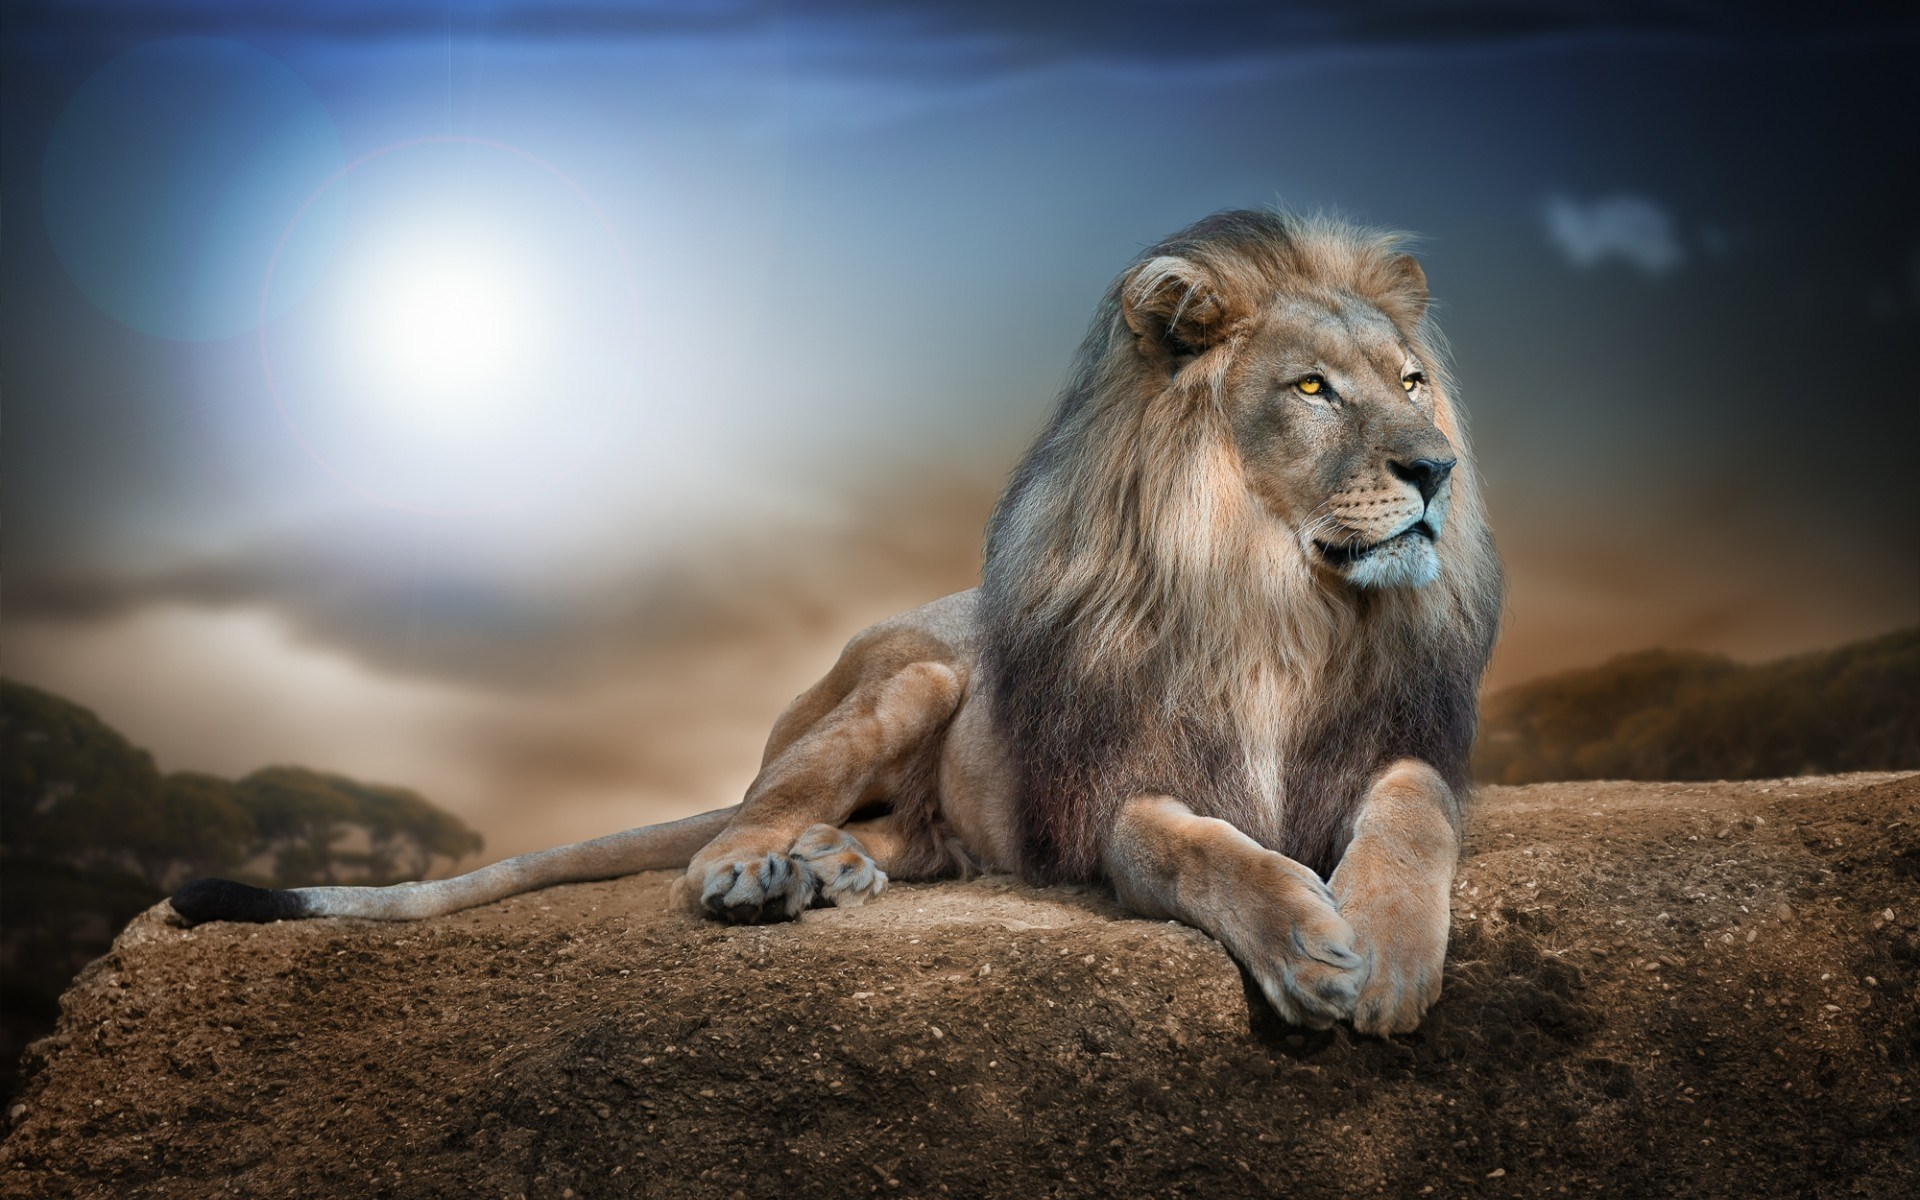 HD Aslan Narnia Background - wallpaper.wiki for Narnia Aslan Wallpaper  166kxo